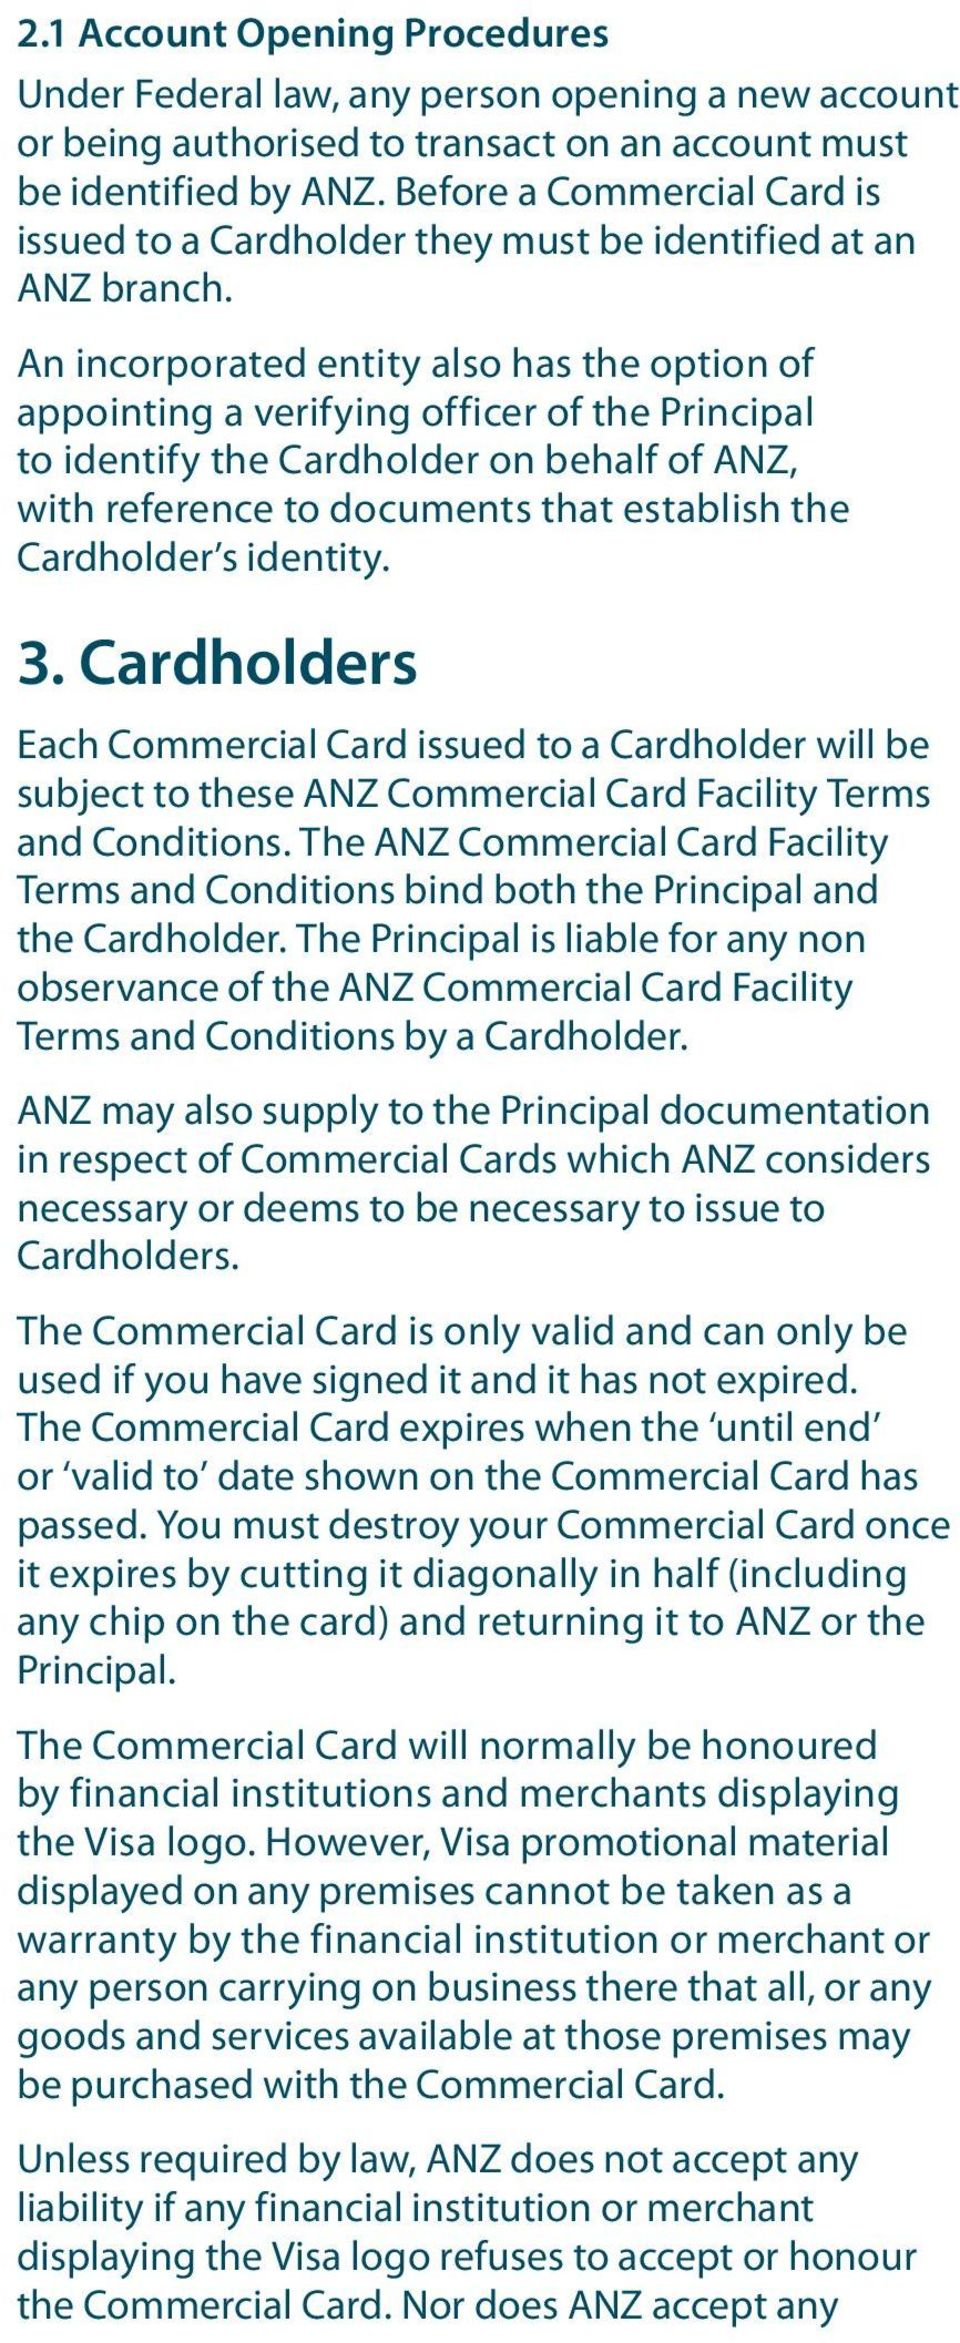 An incorporated entity also has the option of appointing a verifying officer of the Principal to identify the Cardholder on behalf of ANZ, with reference to documents that establish the Cardholder s